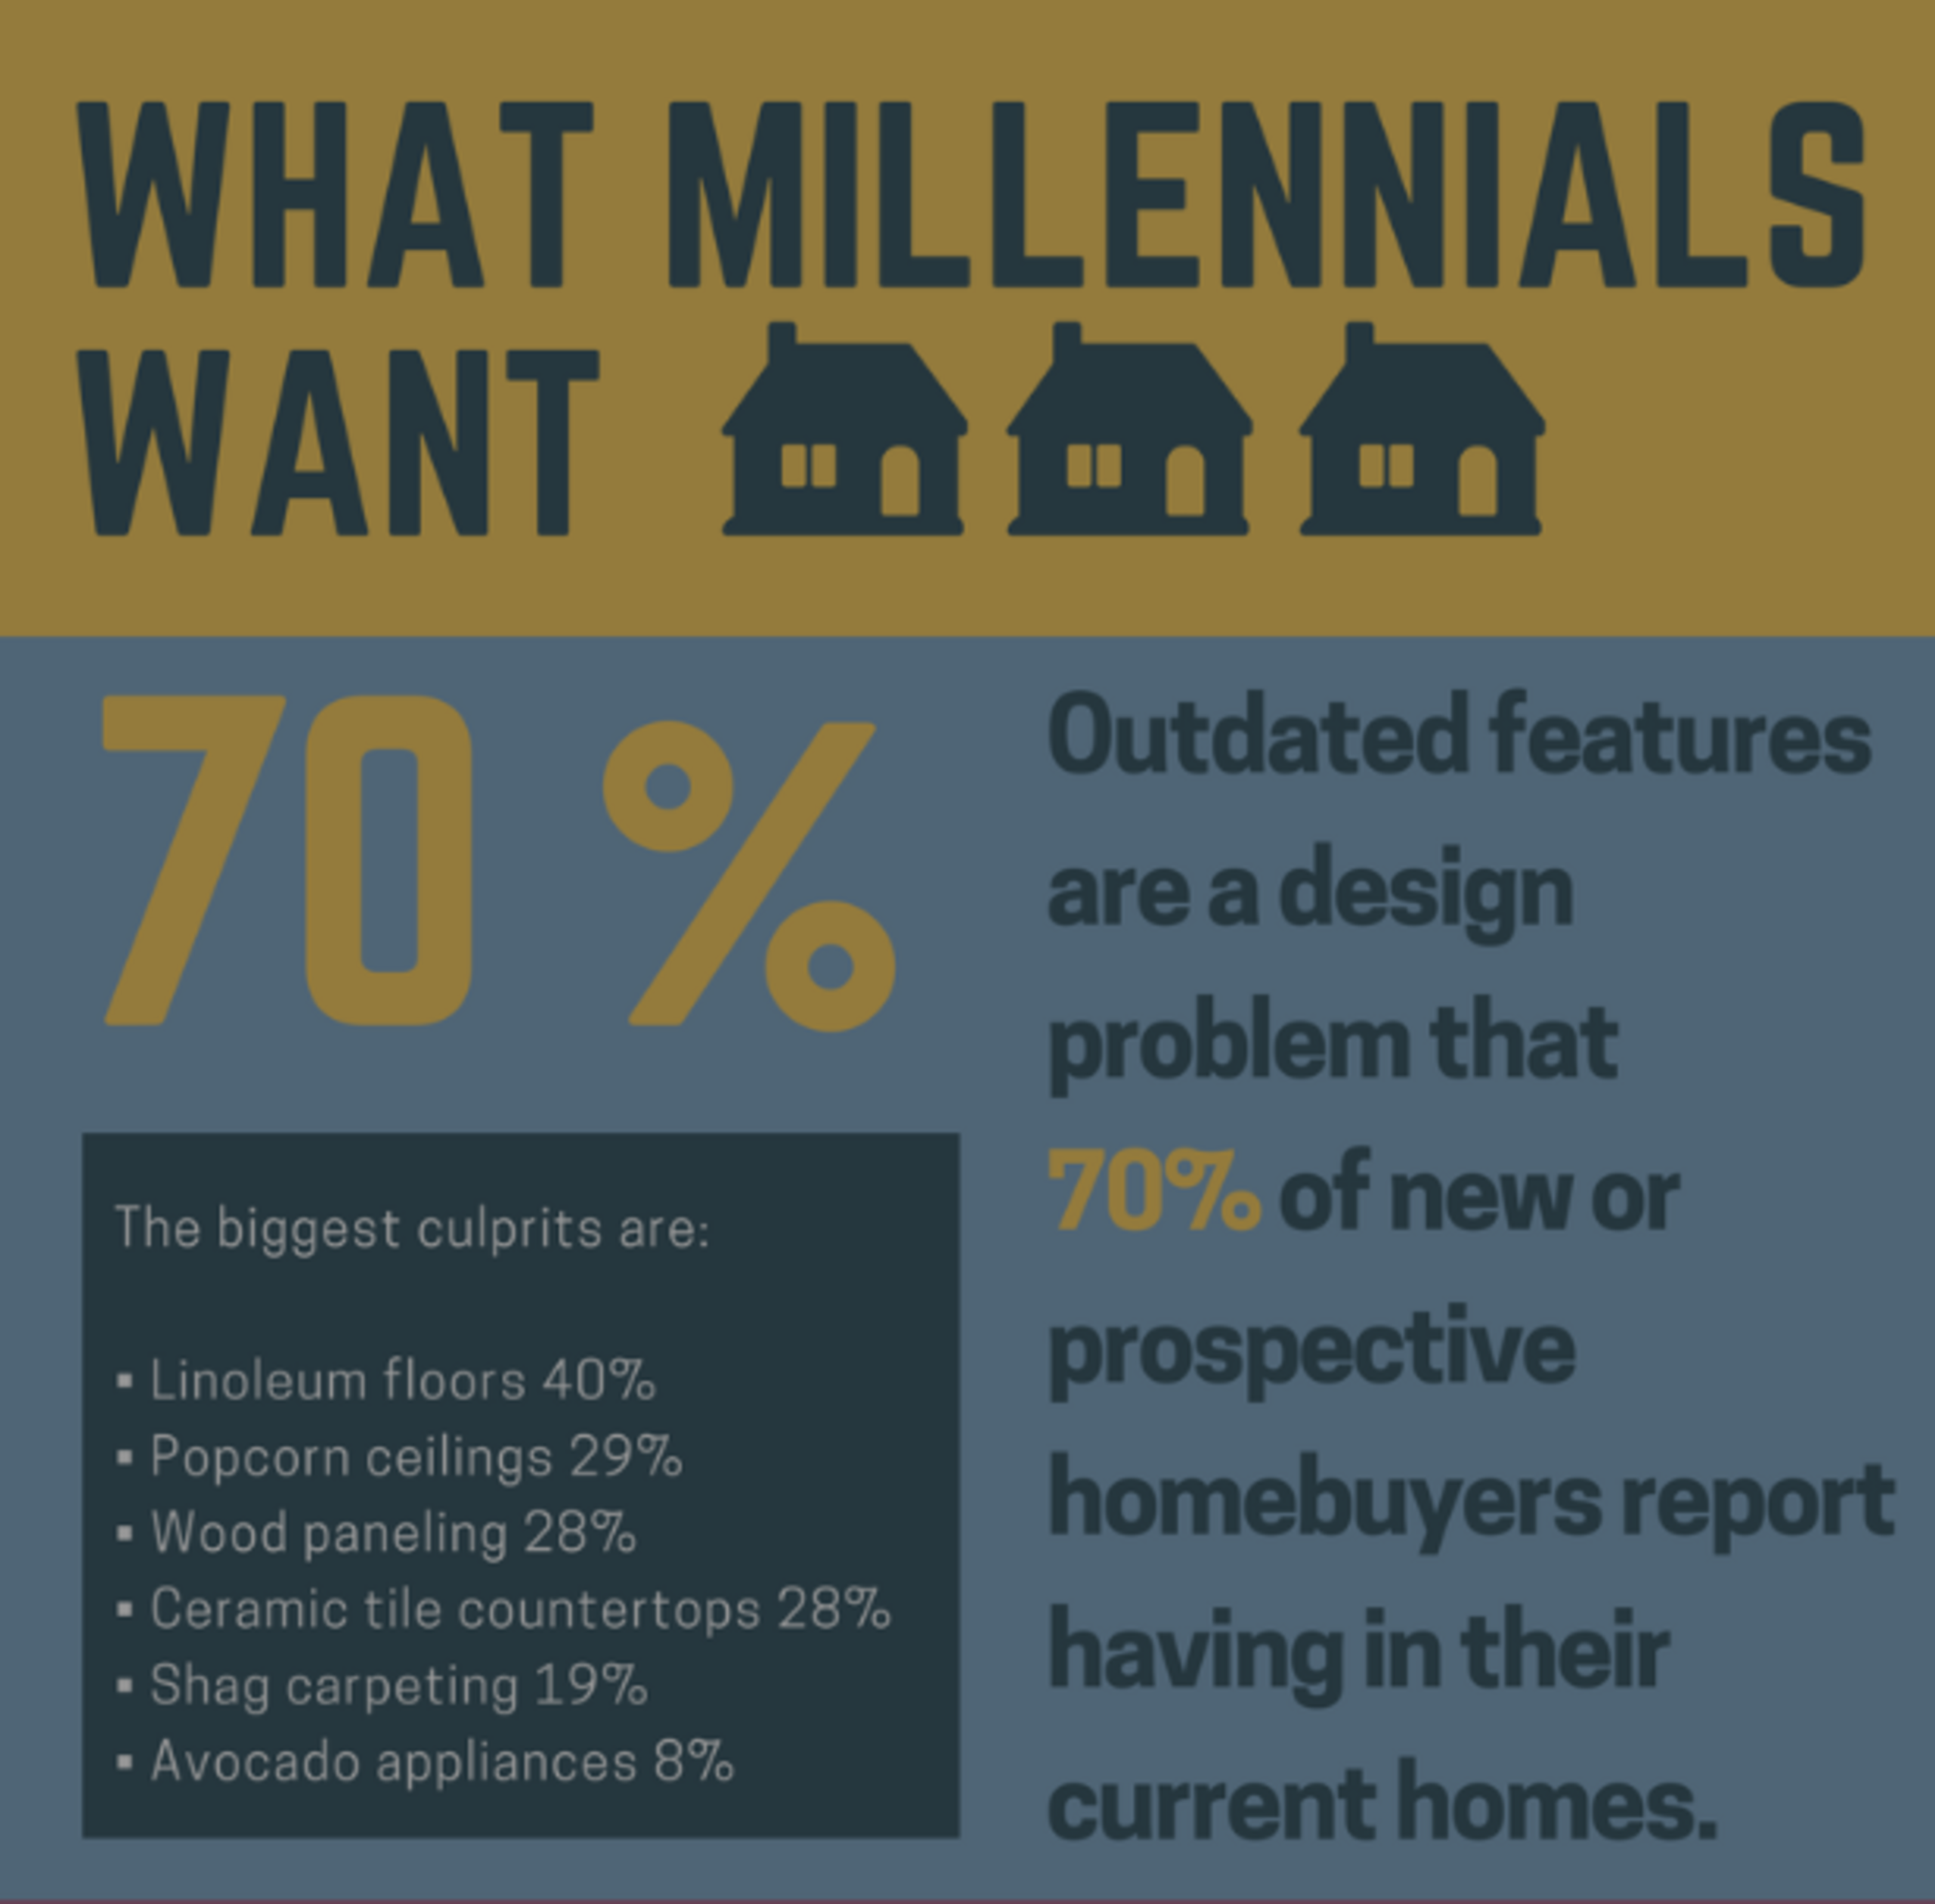 What Do Millennials want?